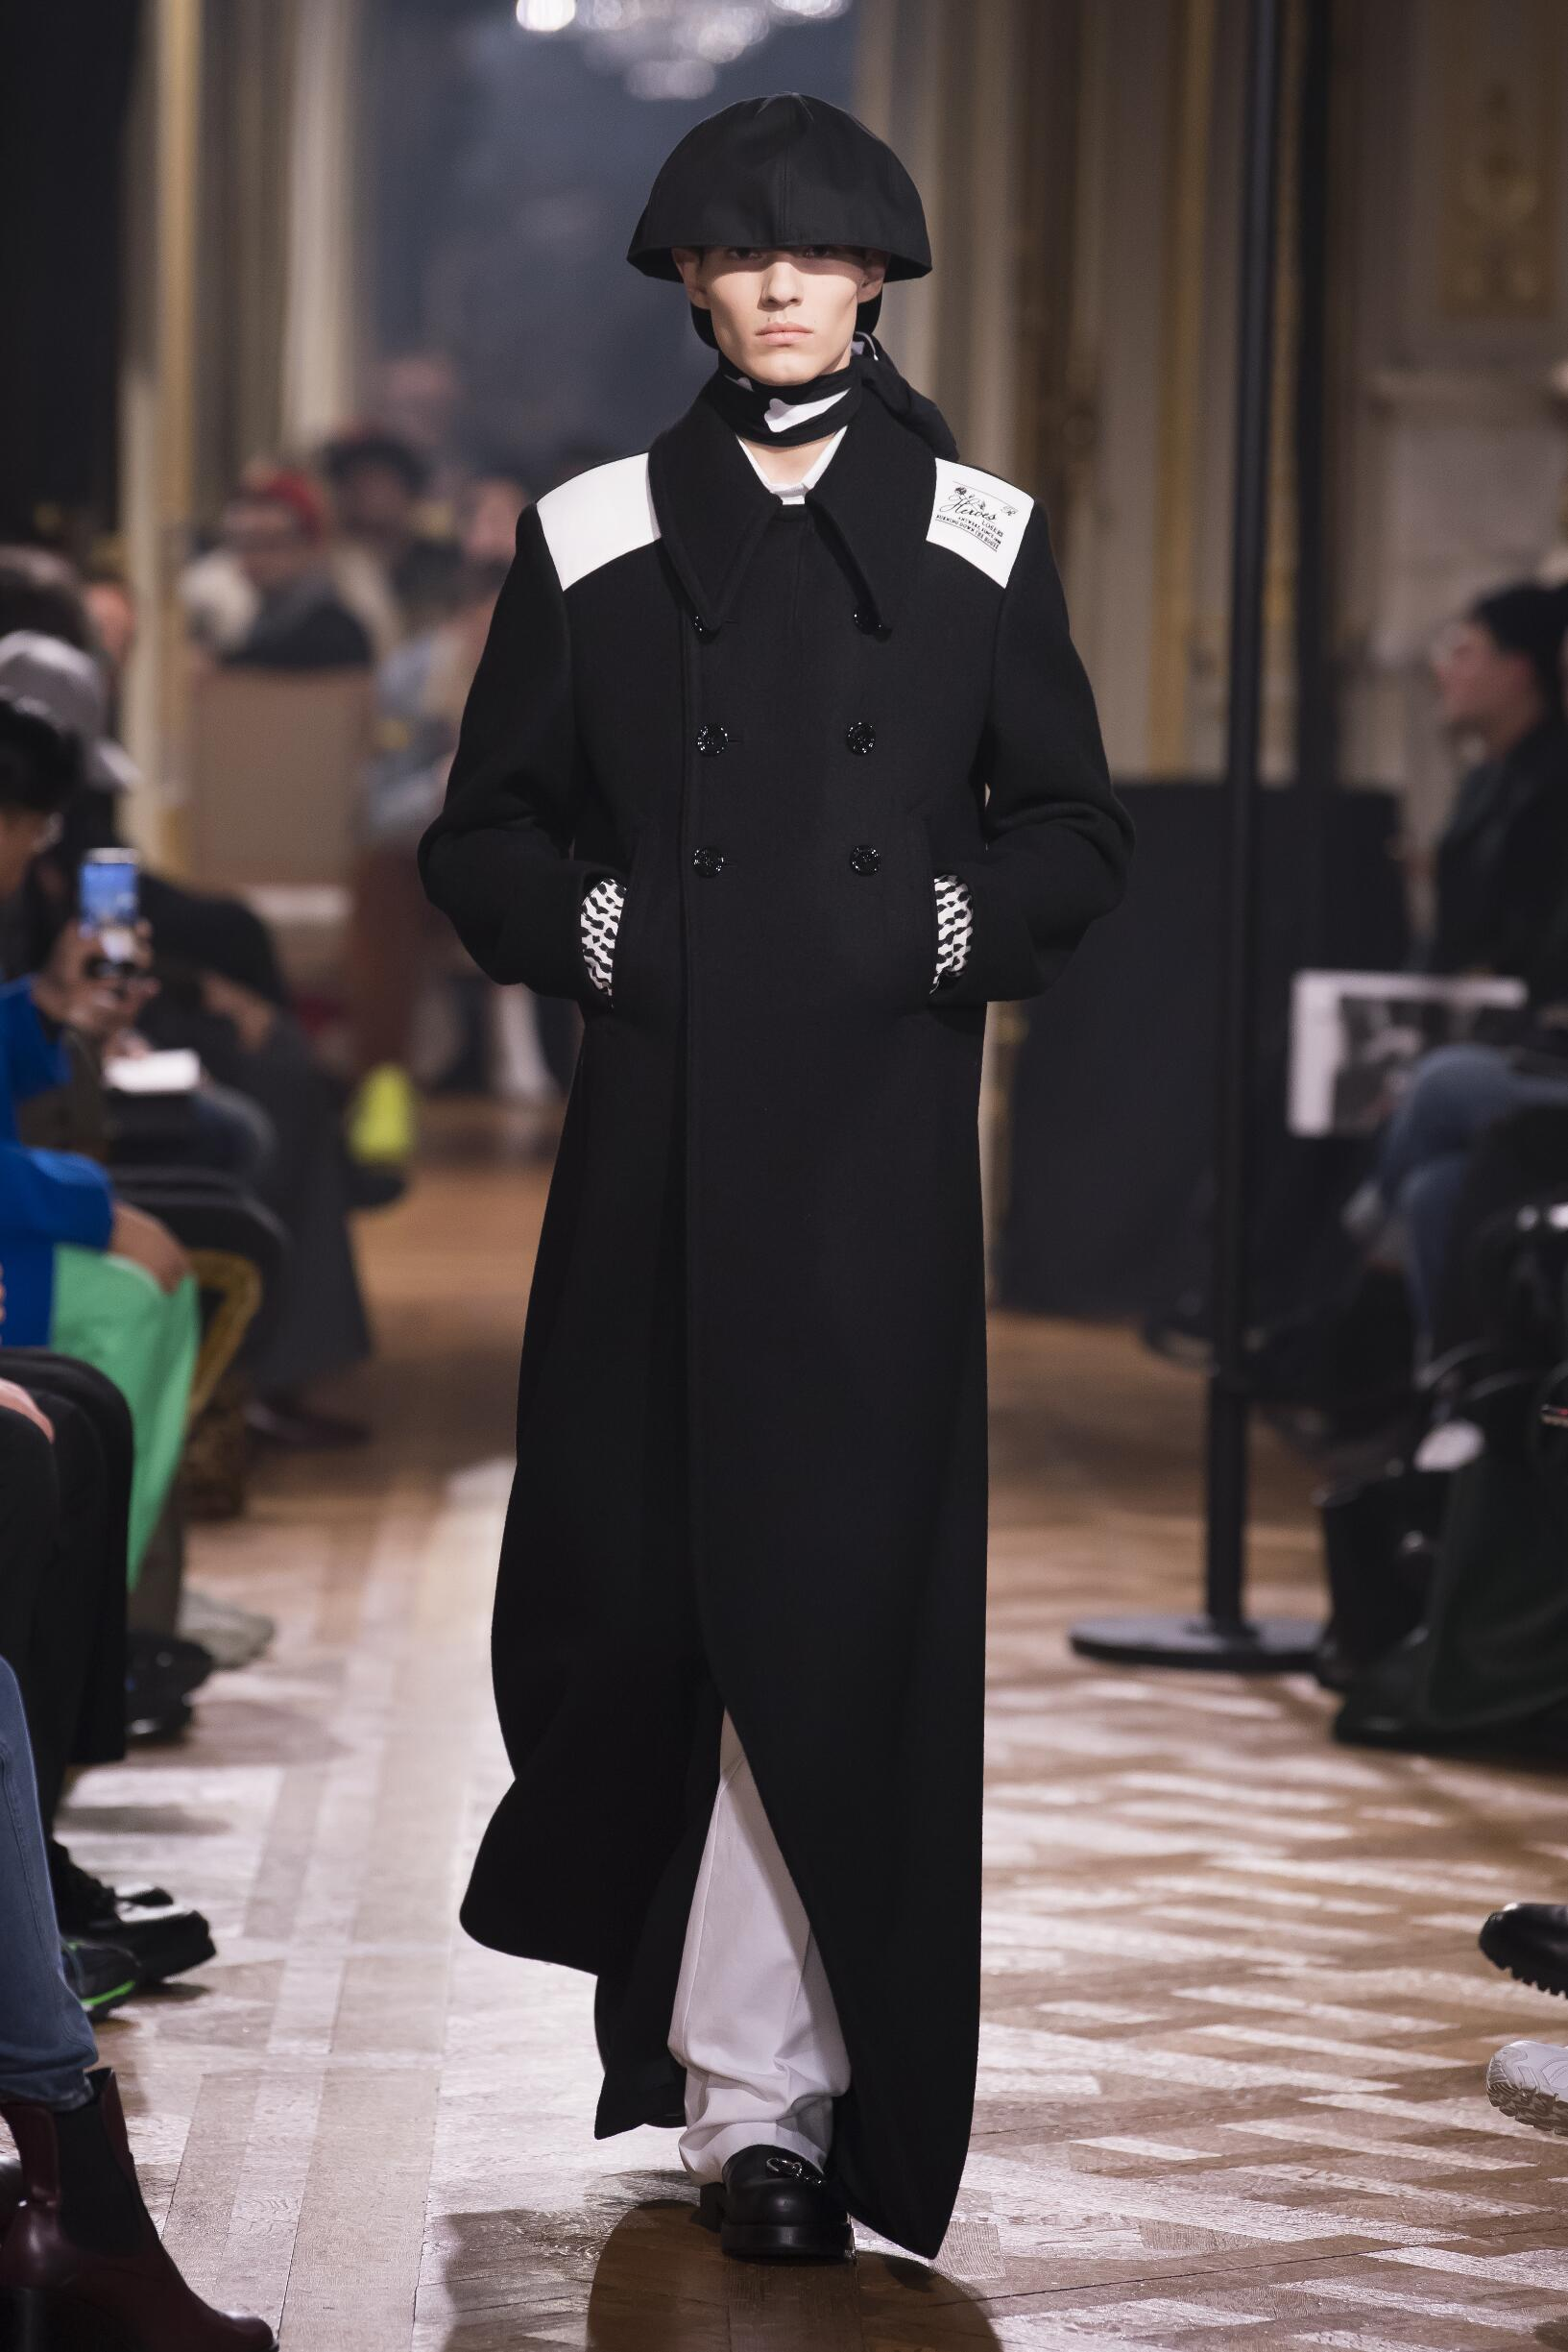 FW 2019-20 Raf Simons Fashion Show